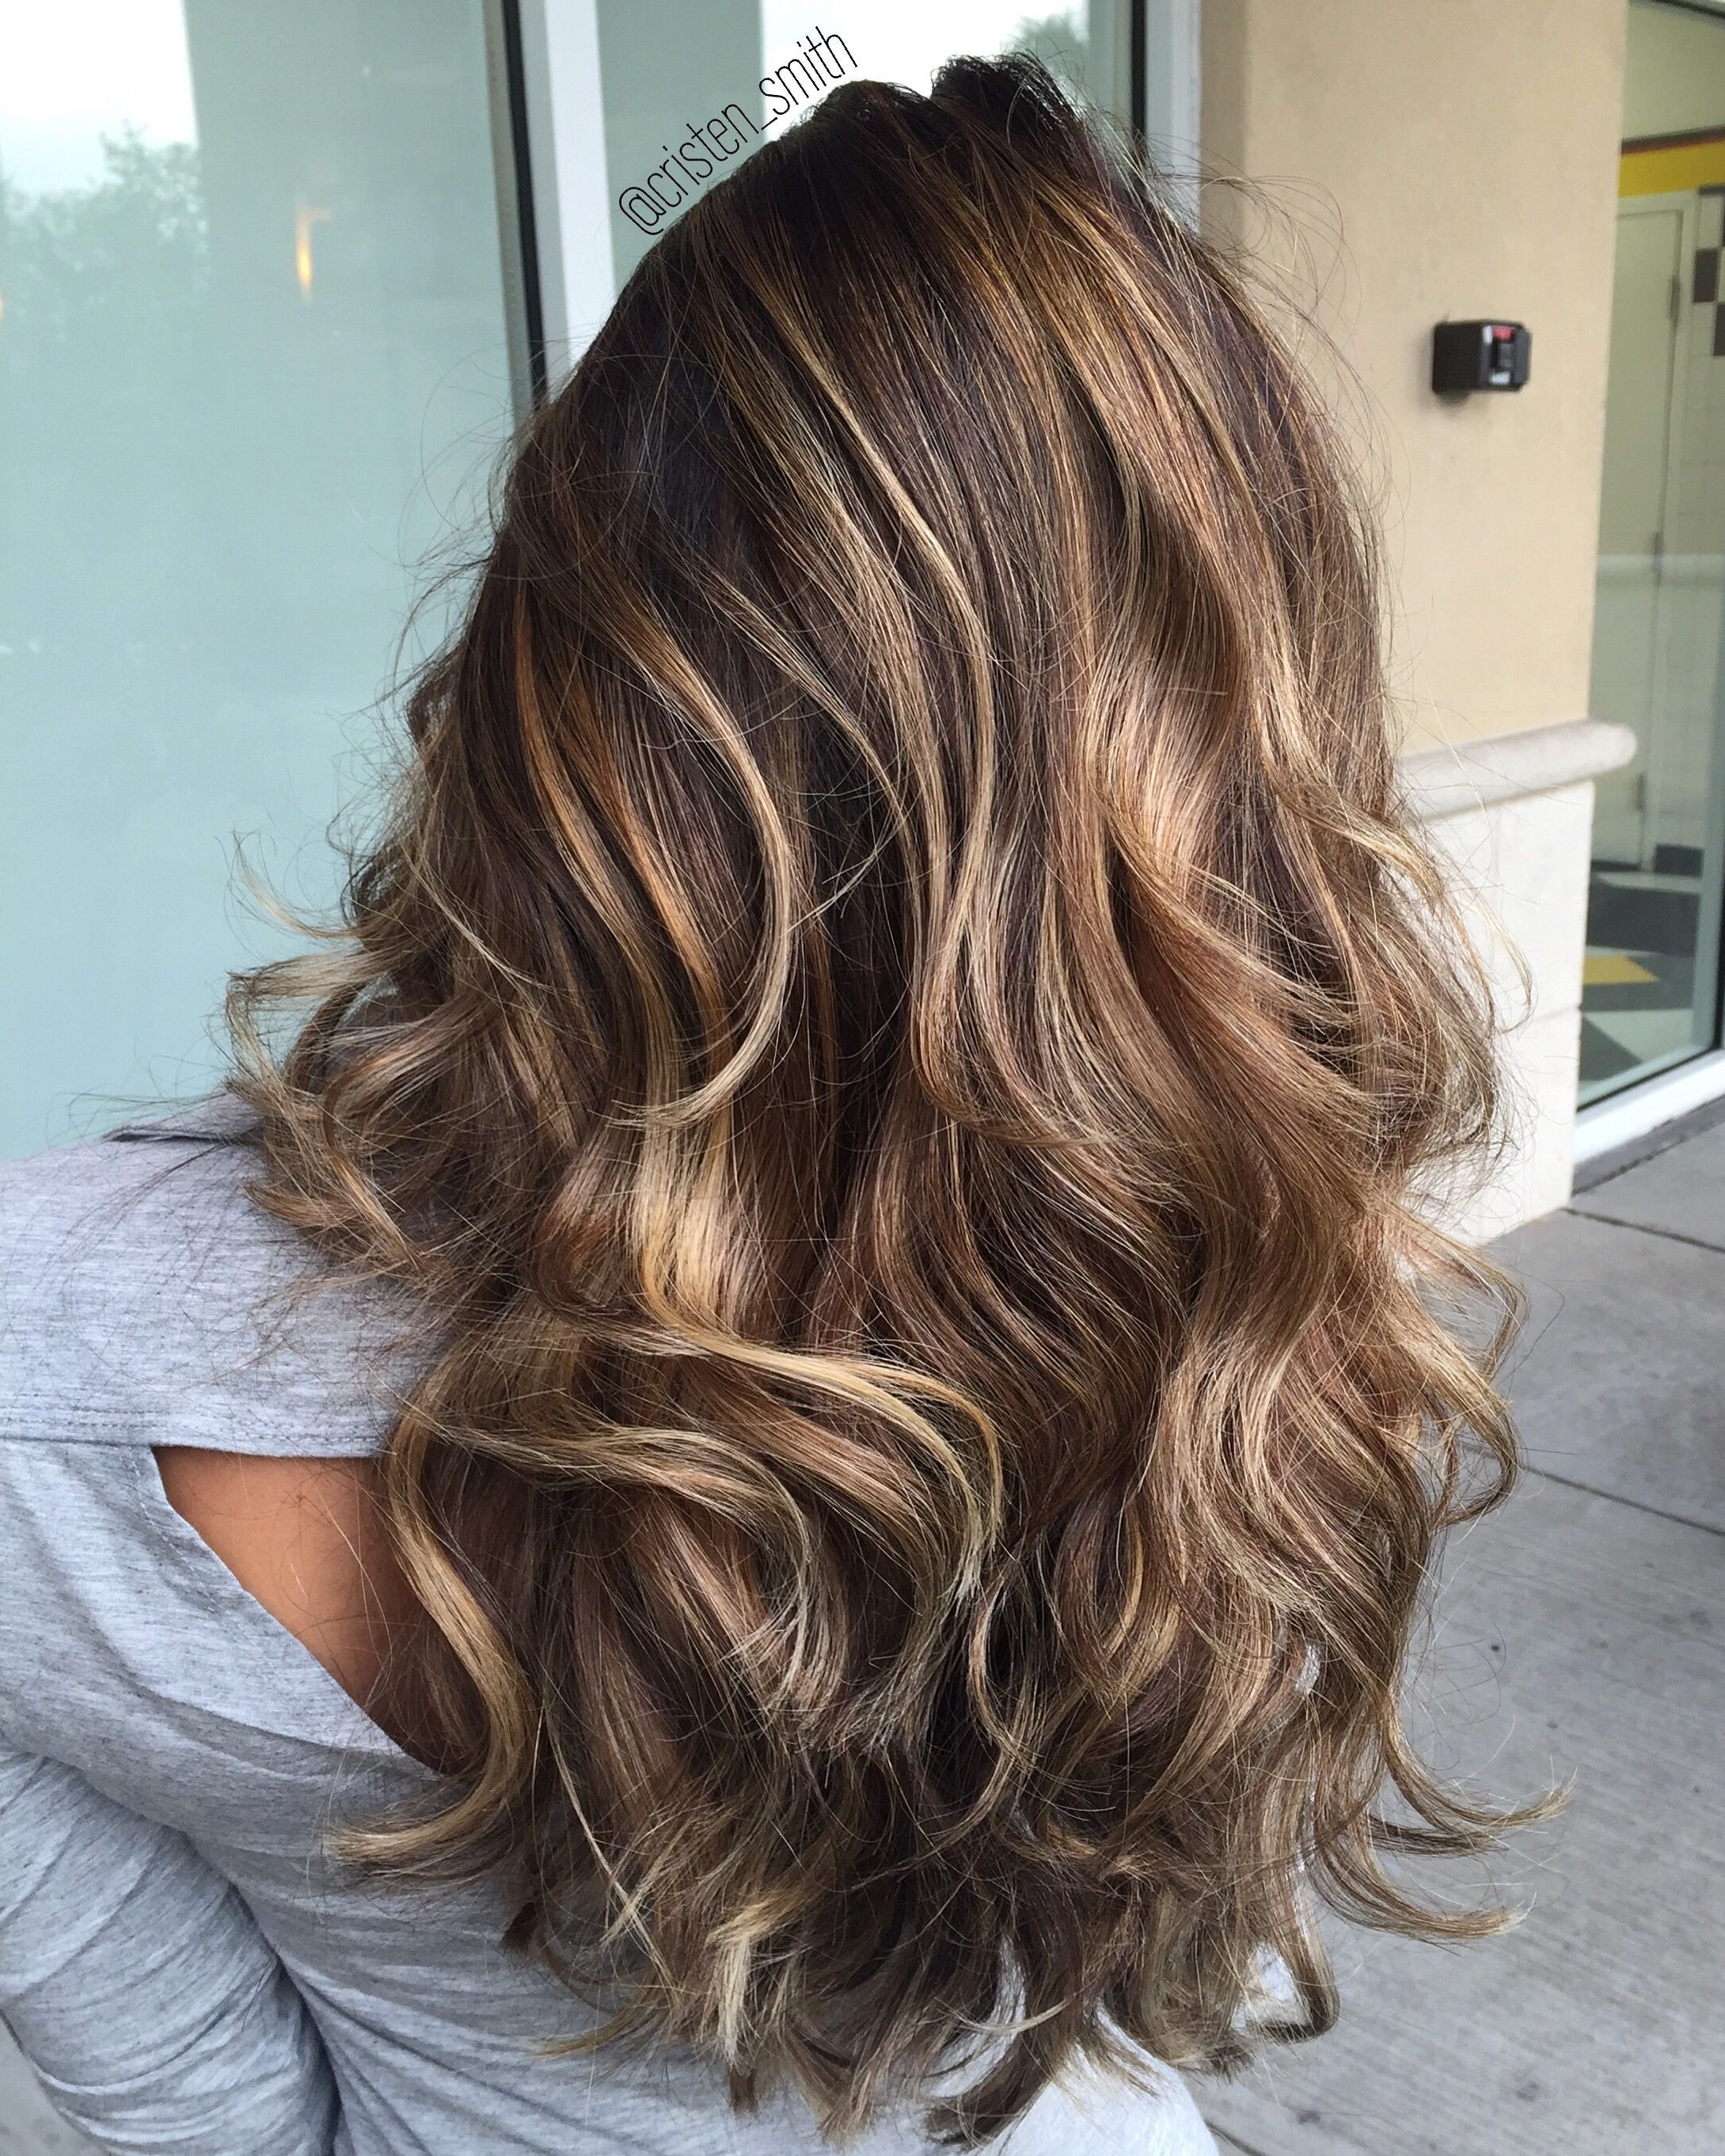 25 delightfully earthy fall hair color ideas | ashy blonde, blonde